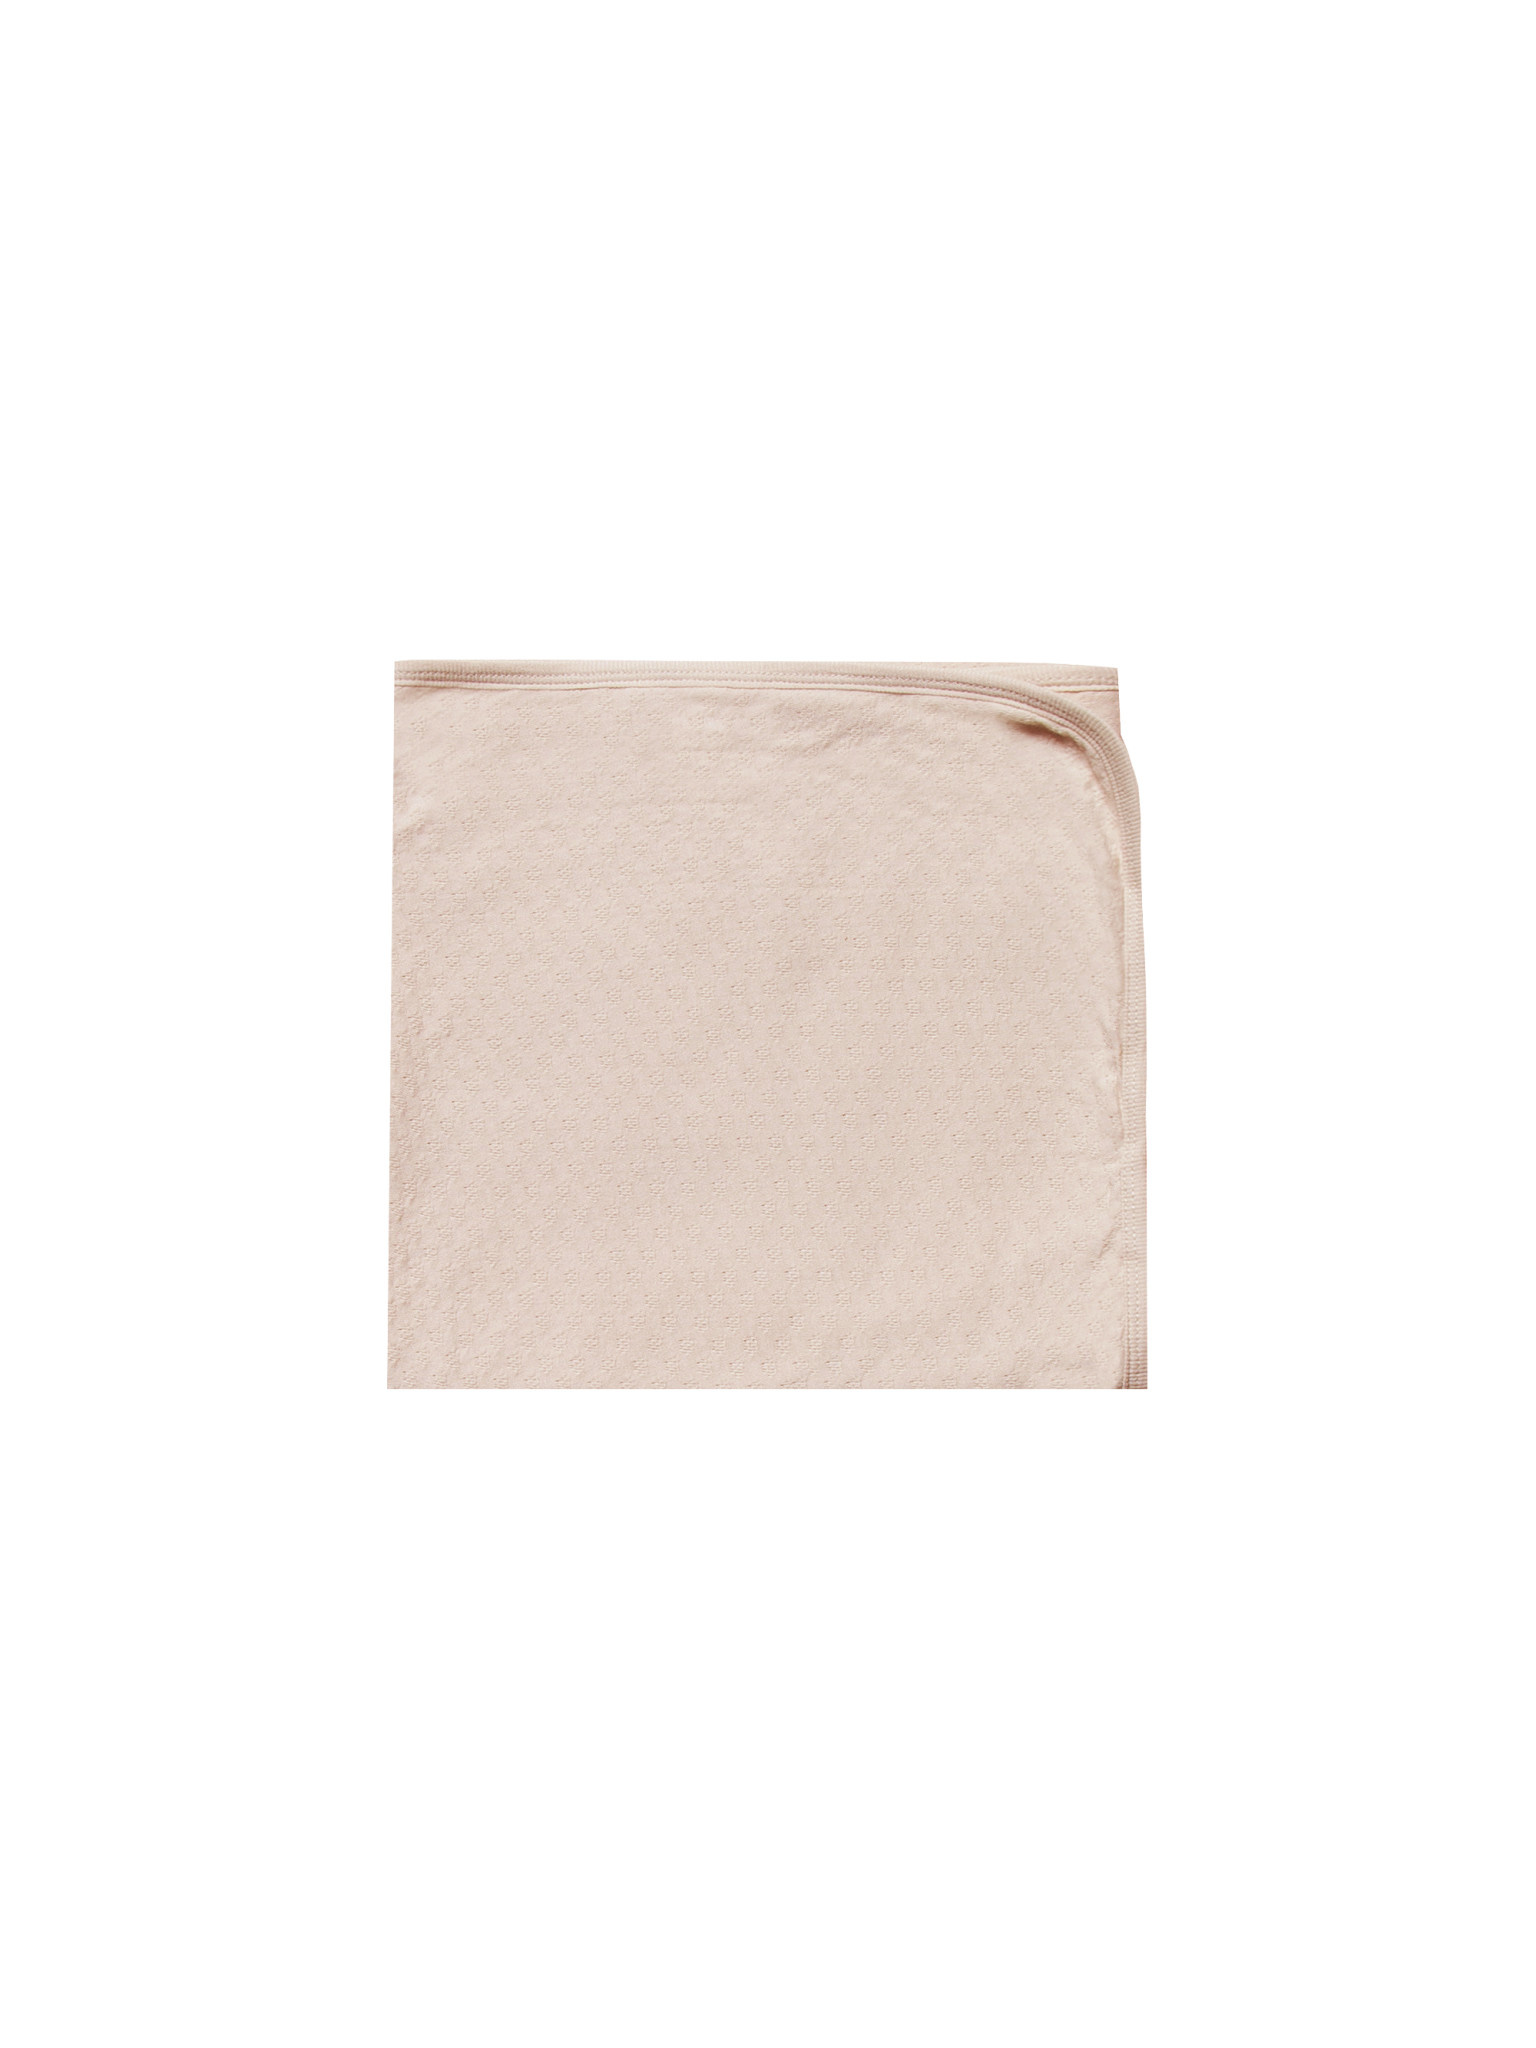 QUINCY MAE Organic Pointelle Baby Blanket